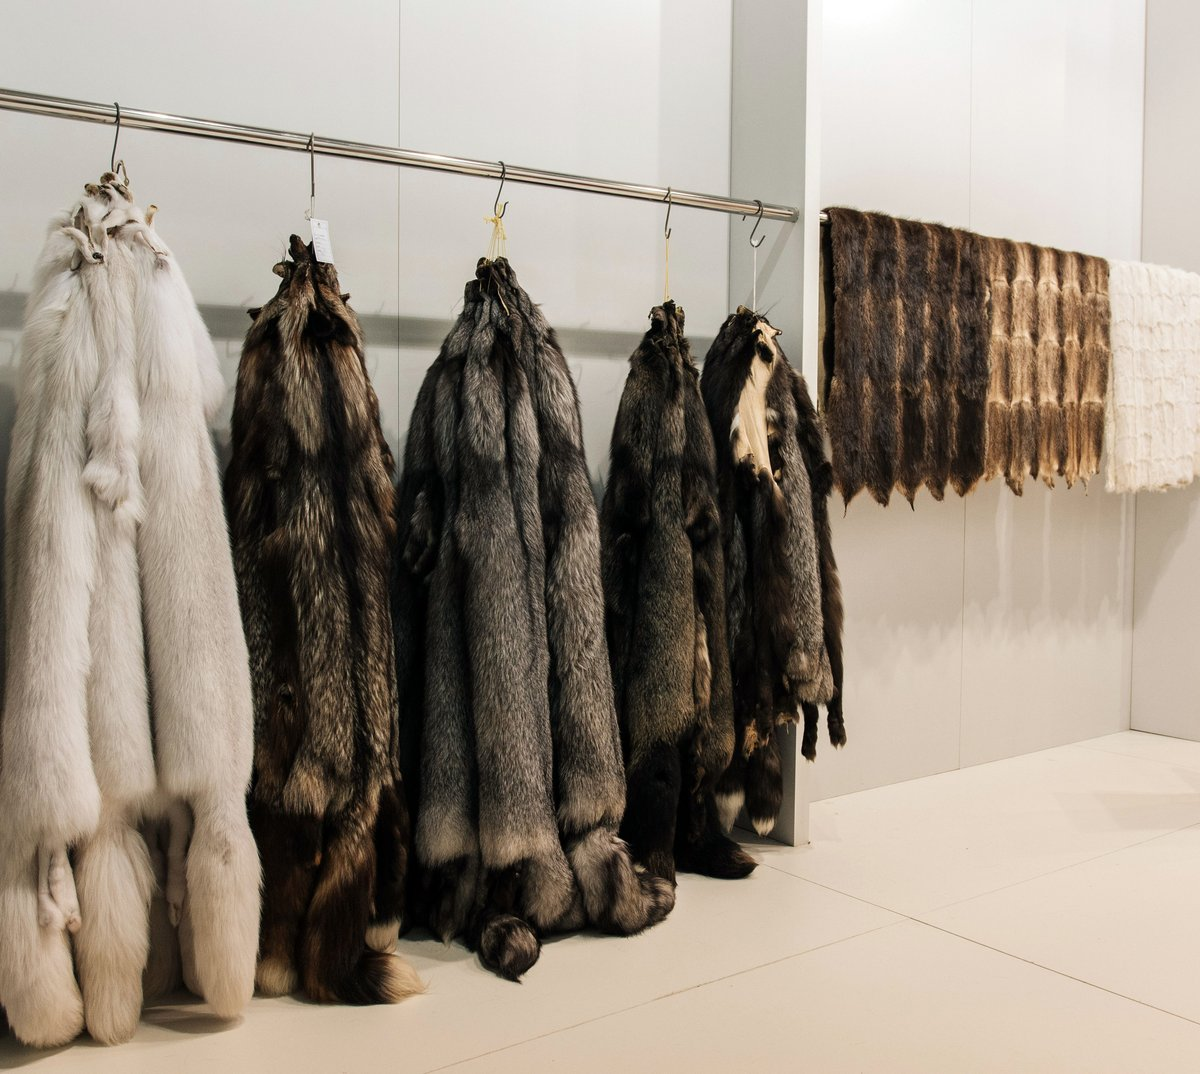 Bulky and classy . From last edition  #WhenLegacyMeetsTheFuture #KastoriaInternationalFurFair #kiff #kastoria #kastoriafurcity #fur #womenswear #fashion #catwalk #exhibition #tradeshow #tradefair #modellife #staysafe #stayhome #memories #memoriesforlife https://t.co/XLlaoNcuul